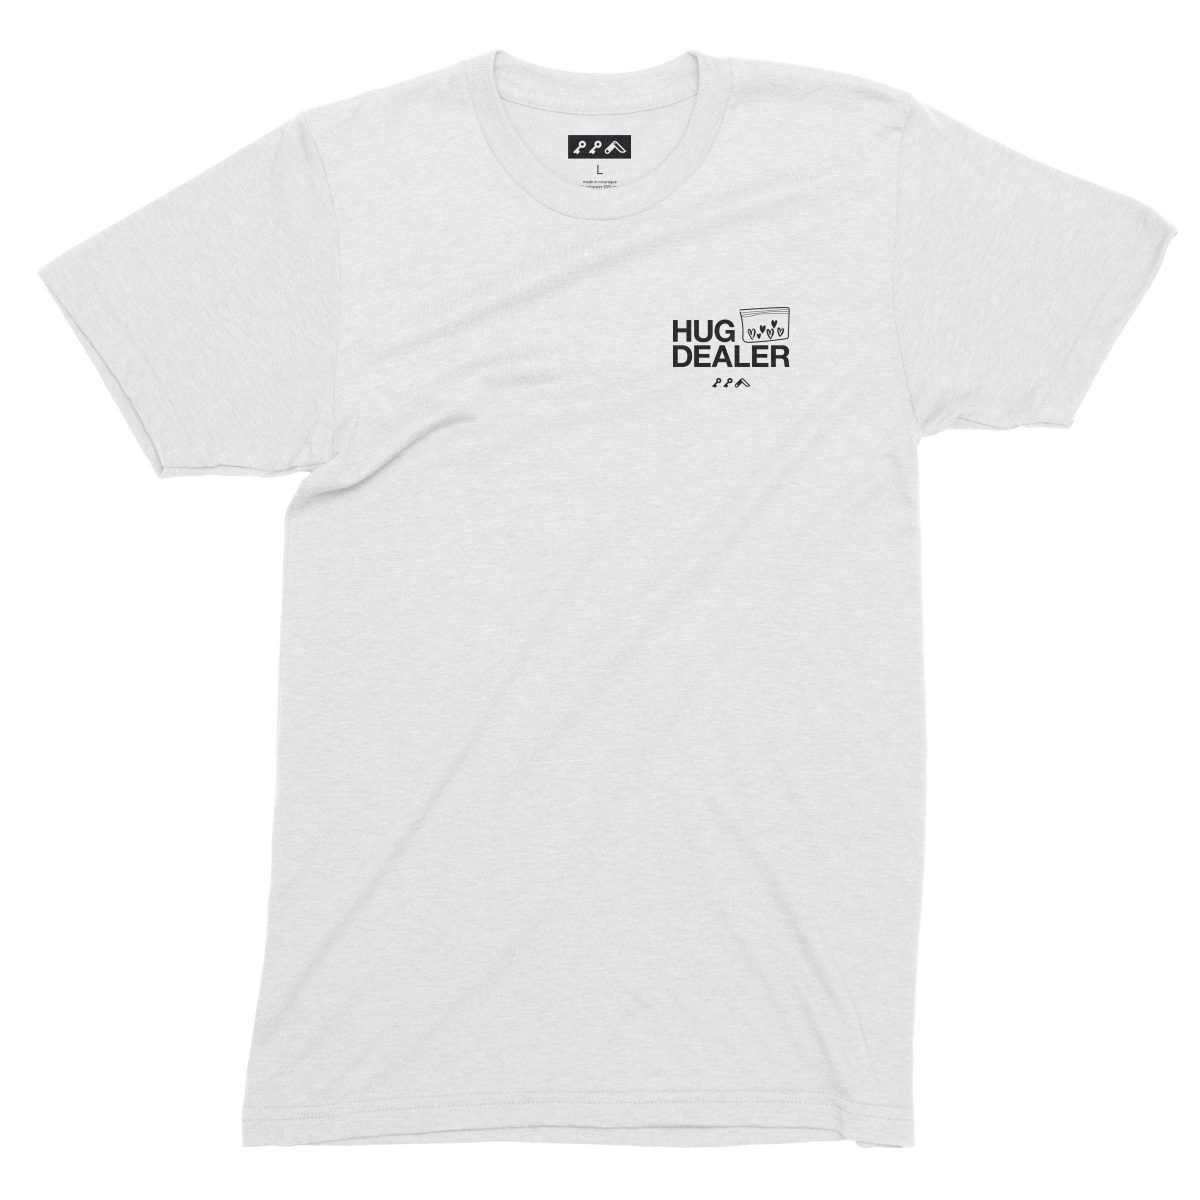 HUG DEALER shirt in white by kikicutt t-shirt store